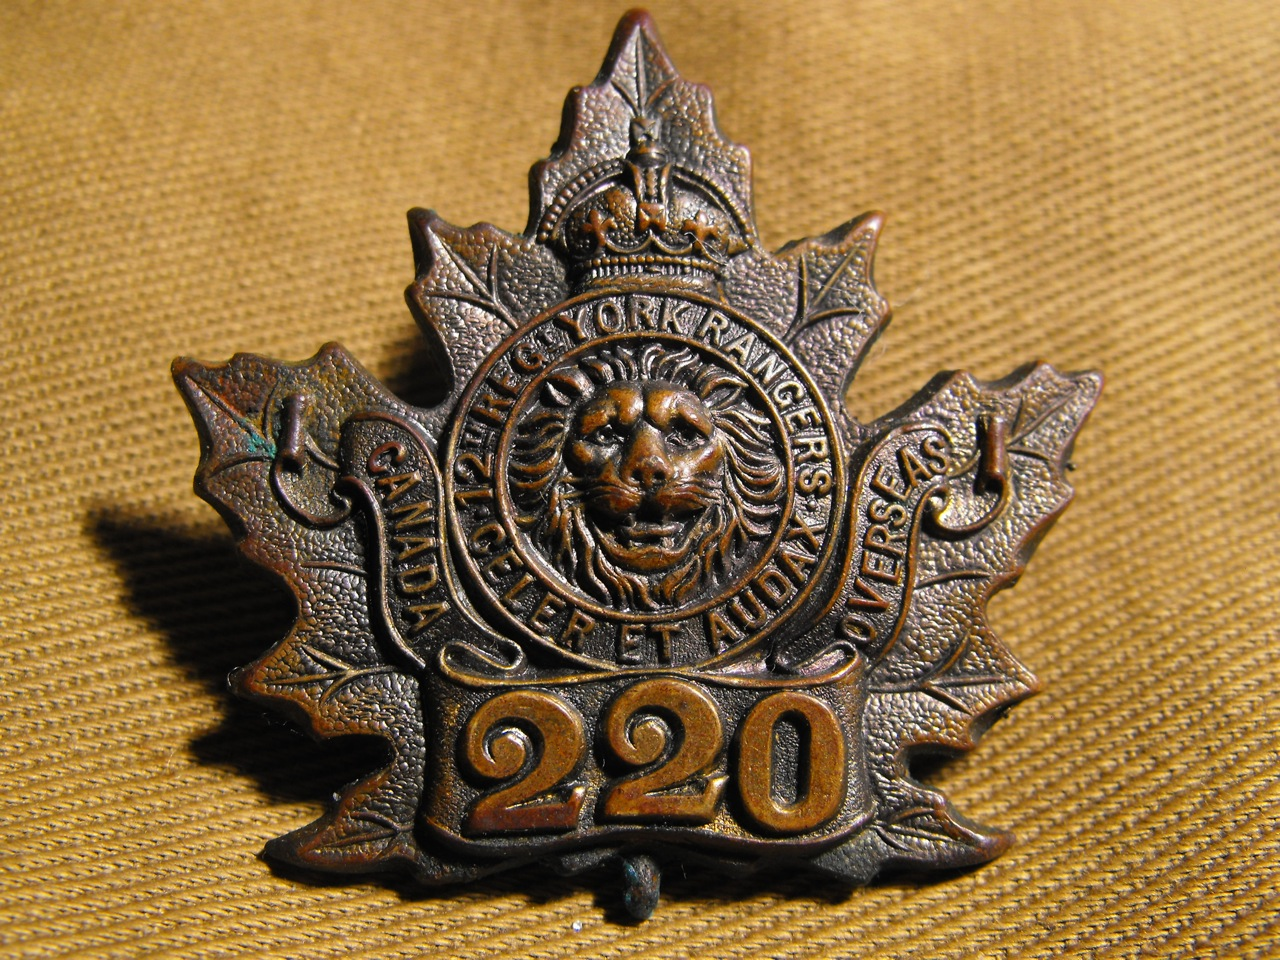 220th Bn. York Rangers Cap Badge